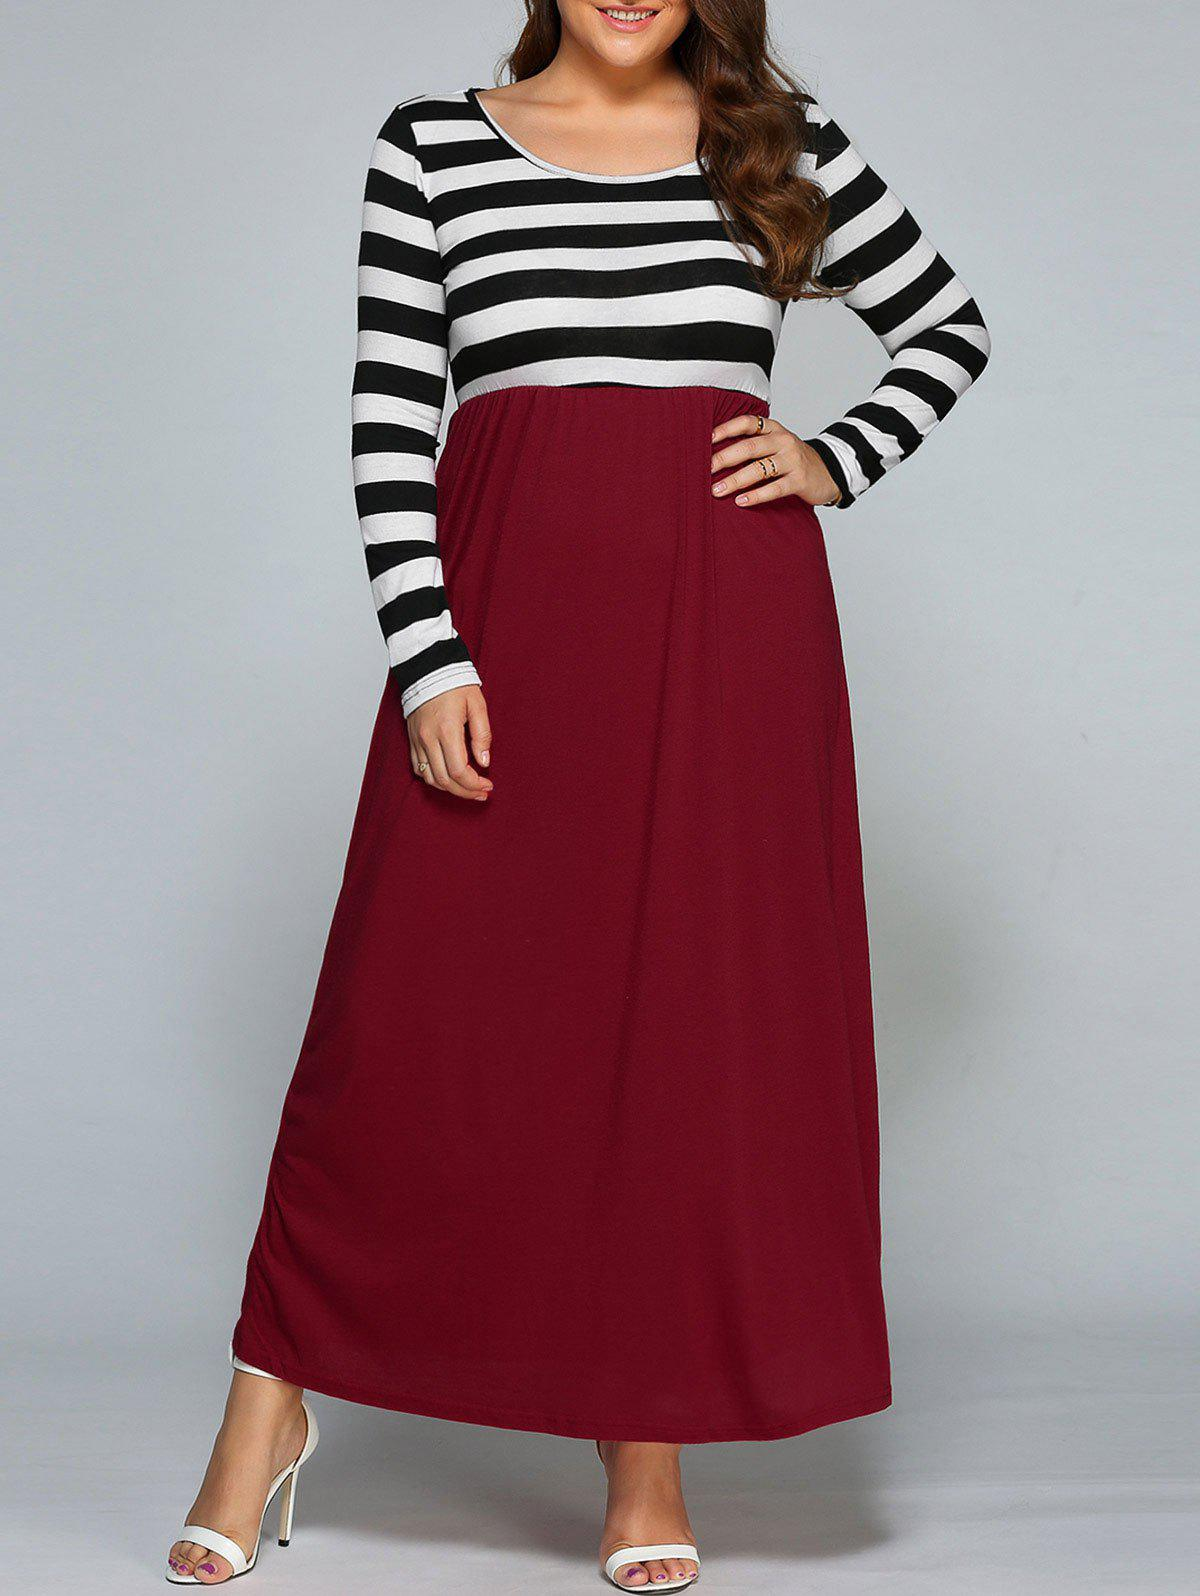 Plus Size Stripe Maxi Dress with SleevesWOMEN<br><br>Size: 2XL; Color: BLACK AND WHITE AND RED; Style: Casual; Material: Cotton,Polyester; Silhouette: A-Line; Dresses Length: Ankle-Length; Neckline: Scoop Neck; Sleeve Length: Long Sleeves; Pattern Type: Striped; With Belt: No; Season: Fall,Spring; Weight: 0.370kg; Package Contents: 1 x Dress;